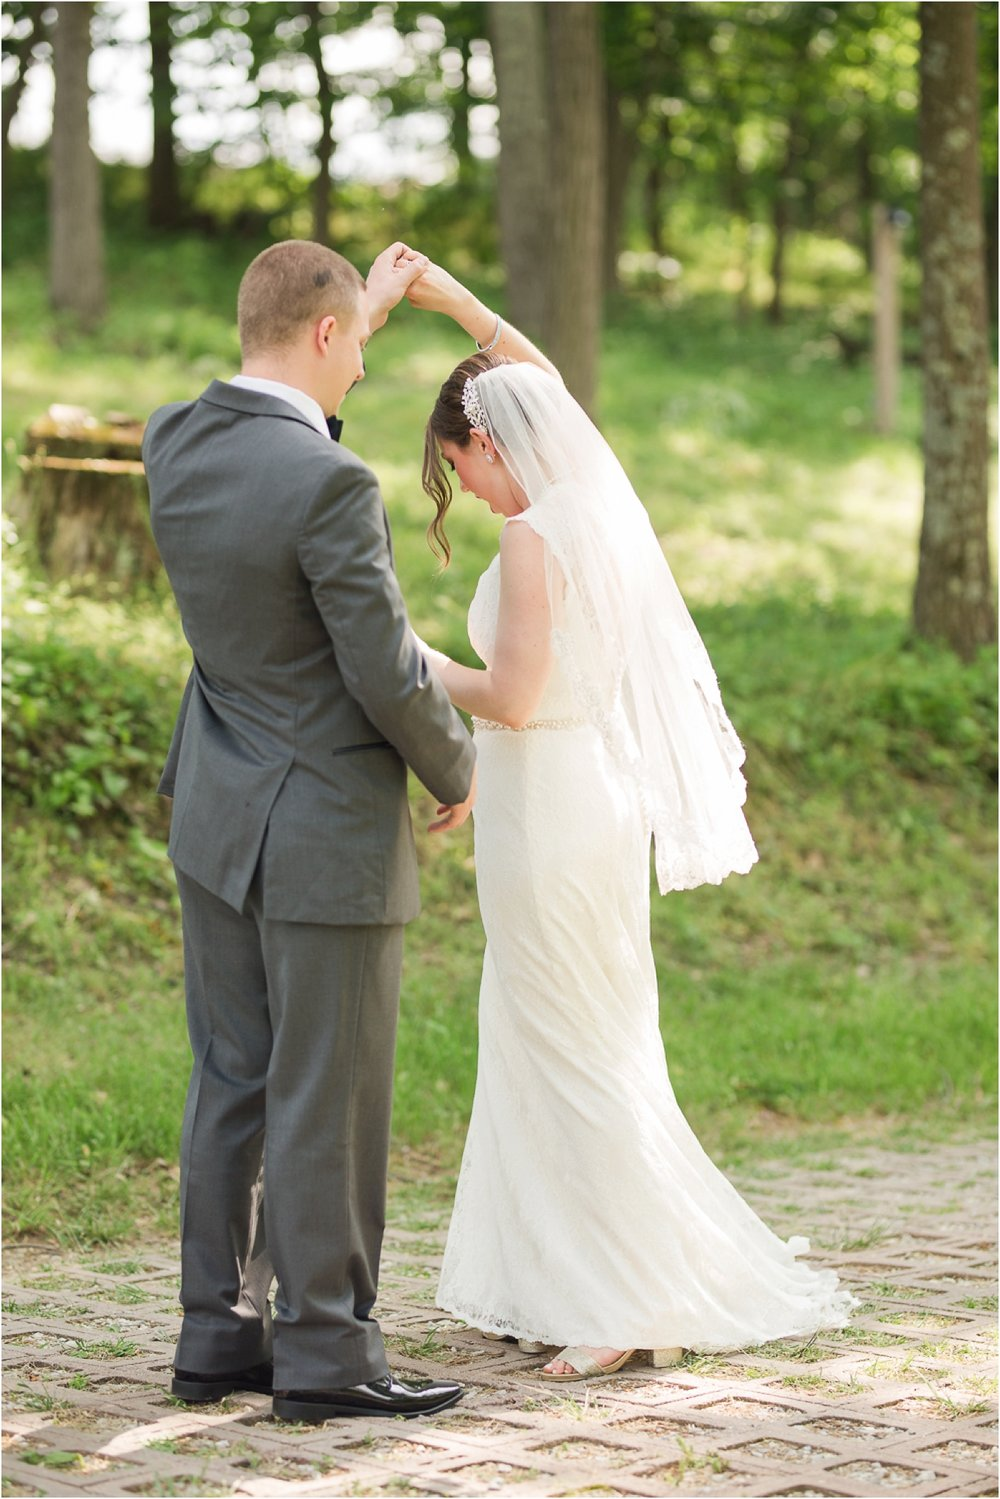 Gettysburg-lodges-wedding-photos-36.jpg